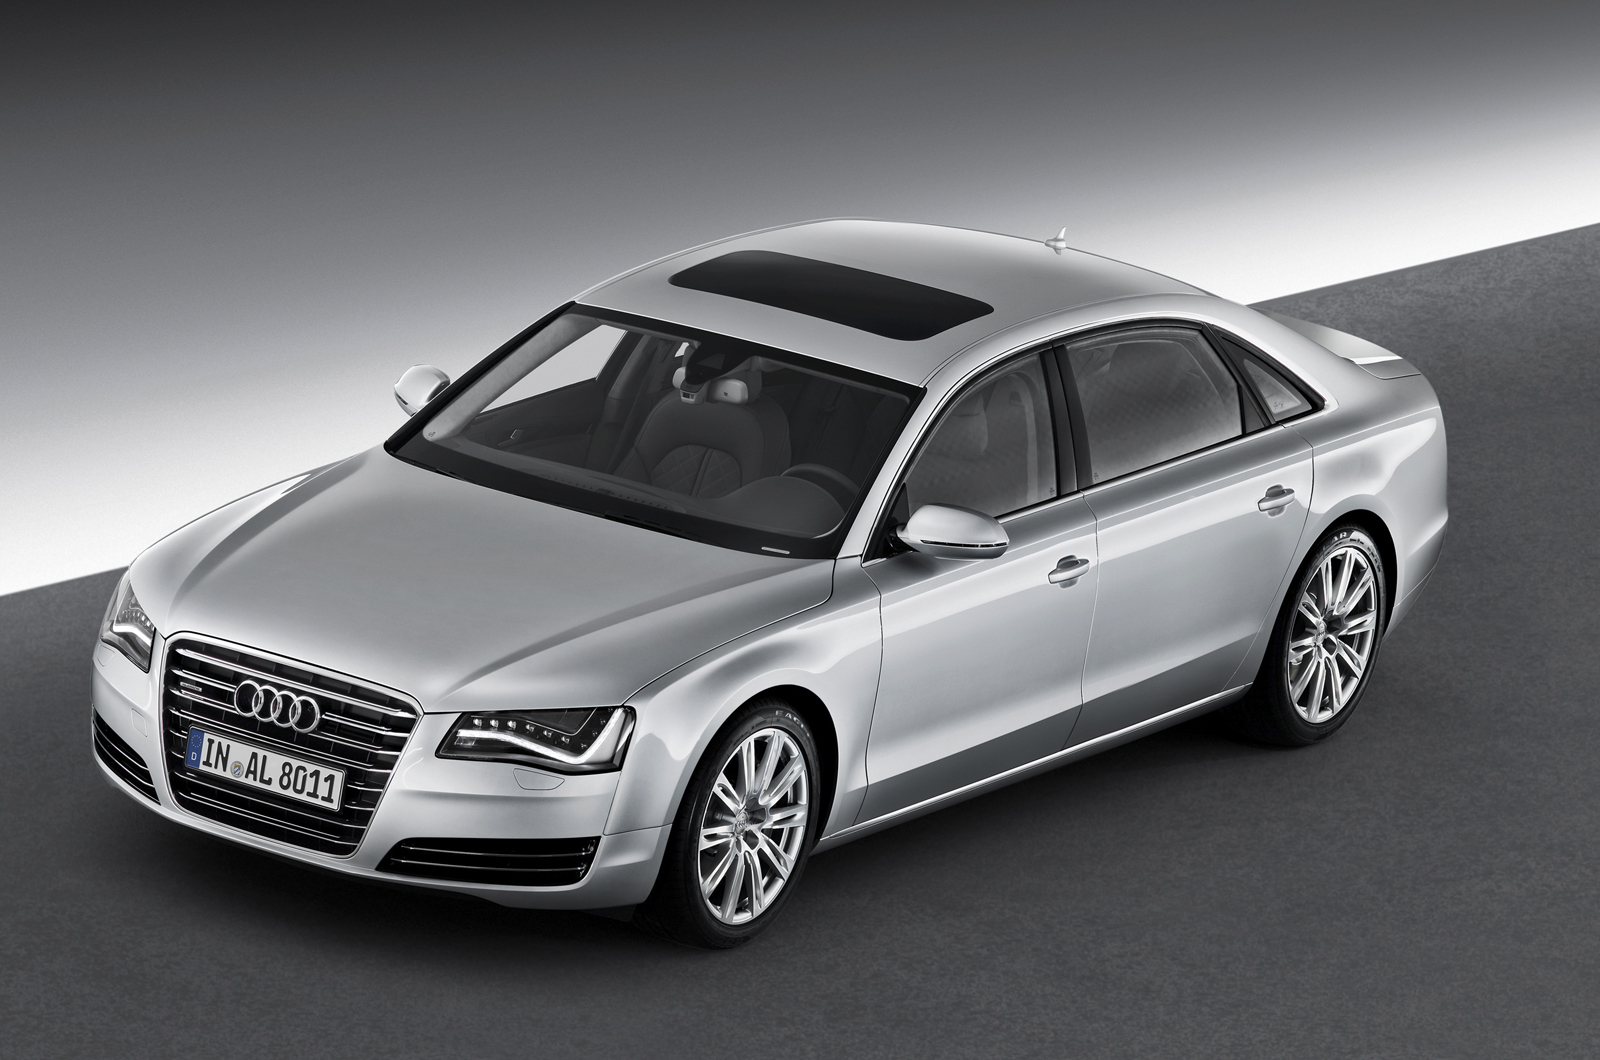 Audi Uk Could Sell 10k More Cars Autocar